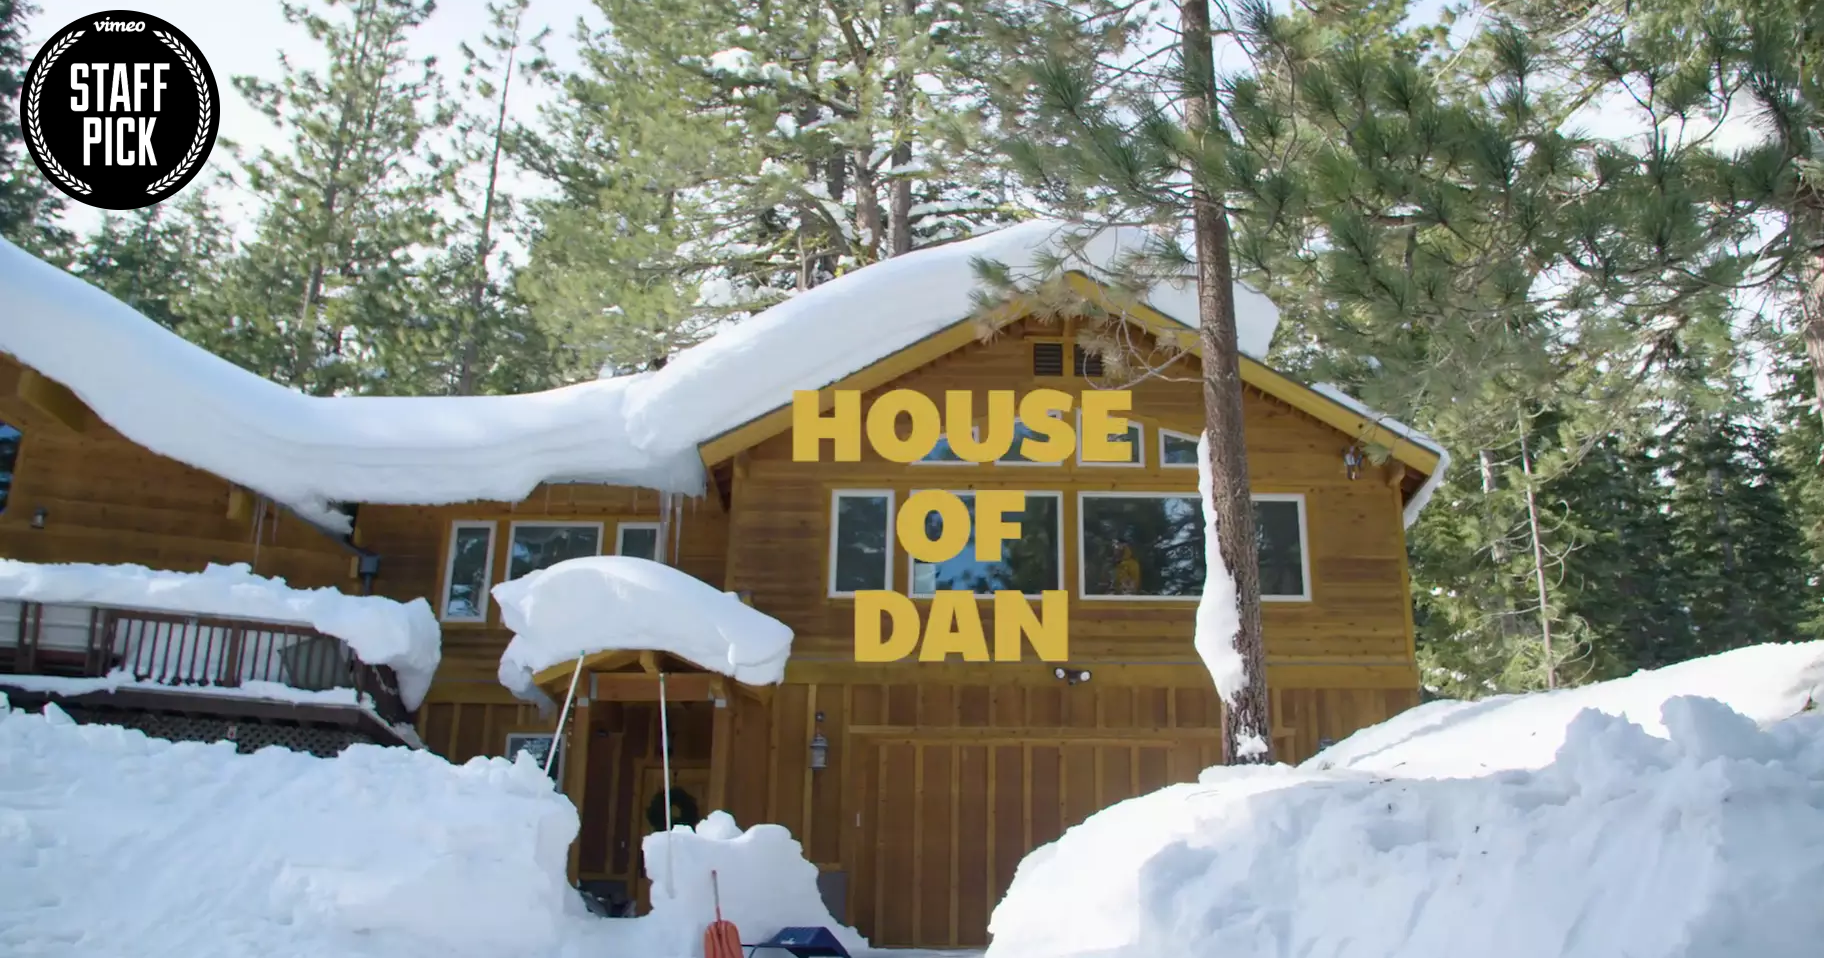 First Vimeo Staff Pick with House of Dan 2017